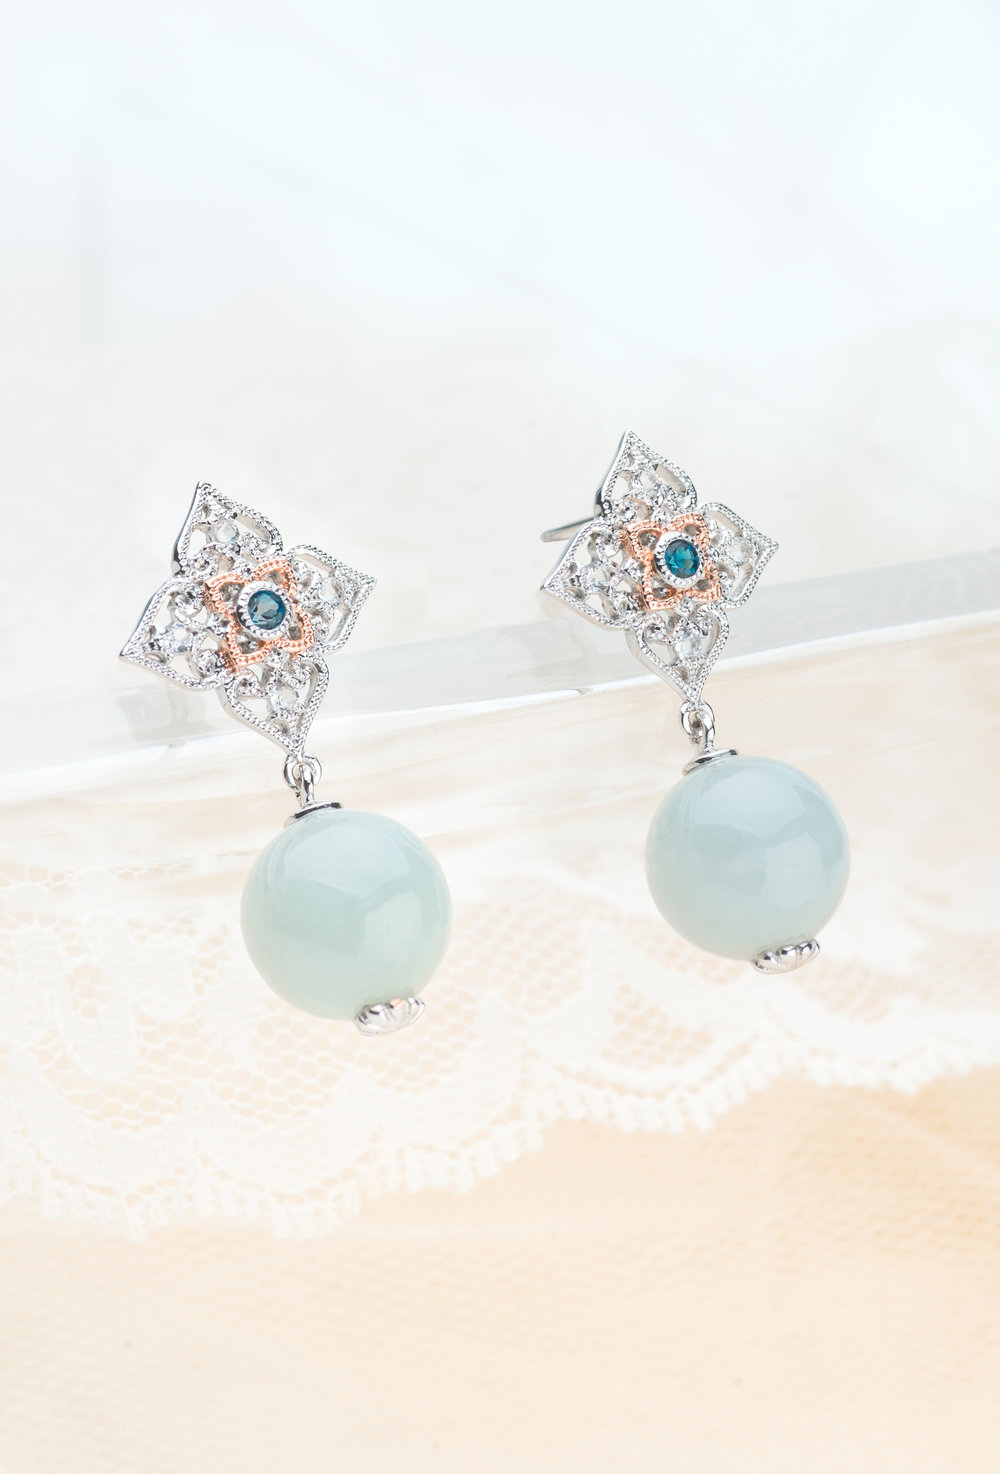 Peranakan Lace Jade Drops_Flat Lay_2018_05_08-0479 (1) copy.jpg